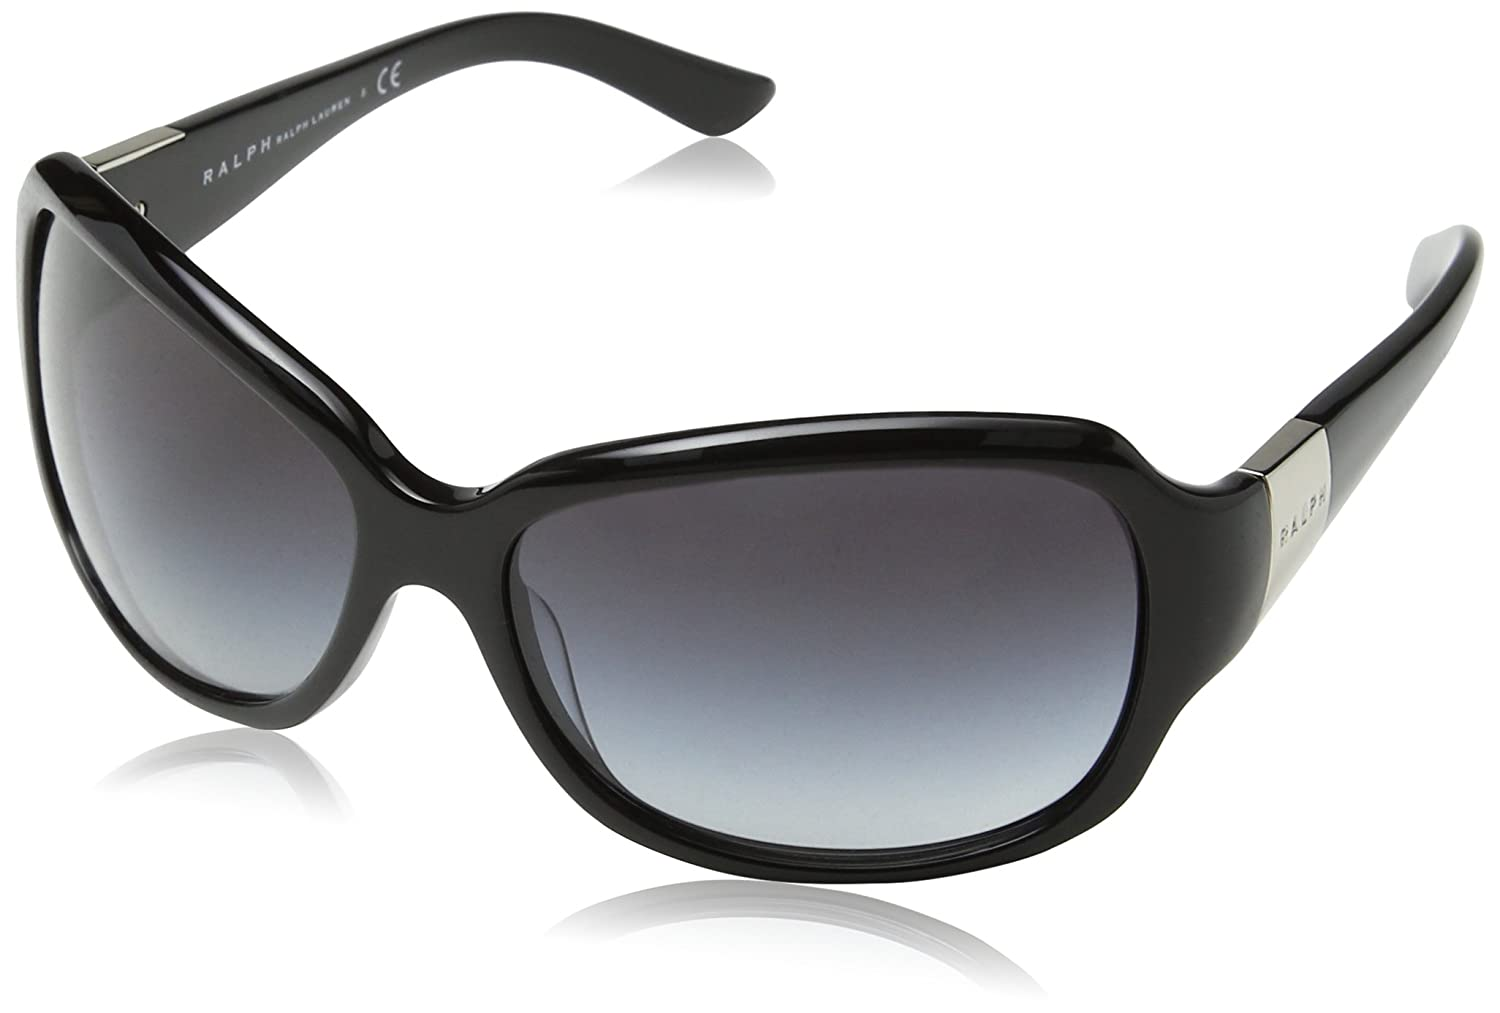 Amazon.com: Ralph by Ralph Lauren ra5005 anteojos de sol ...